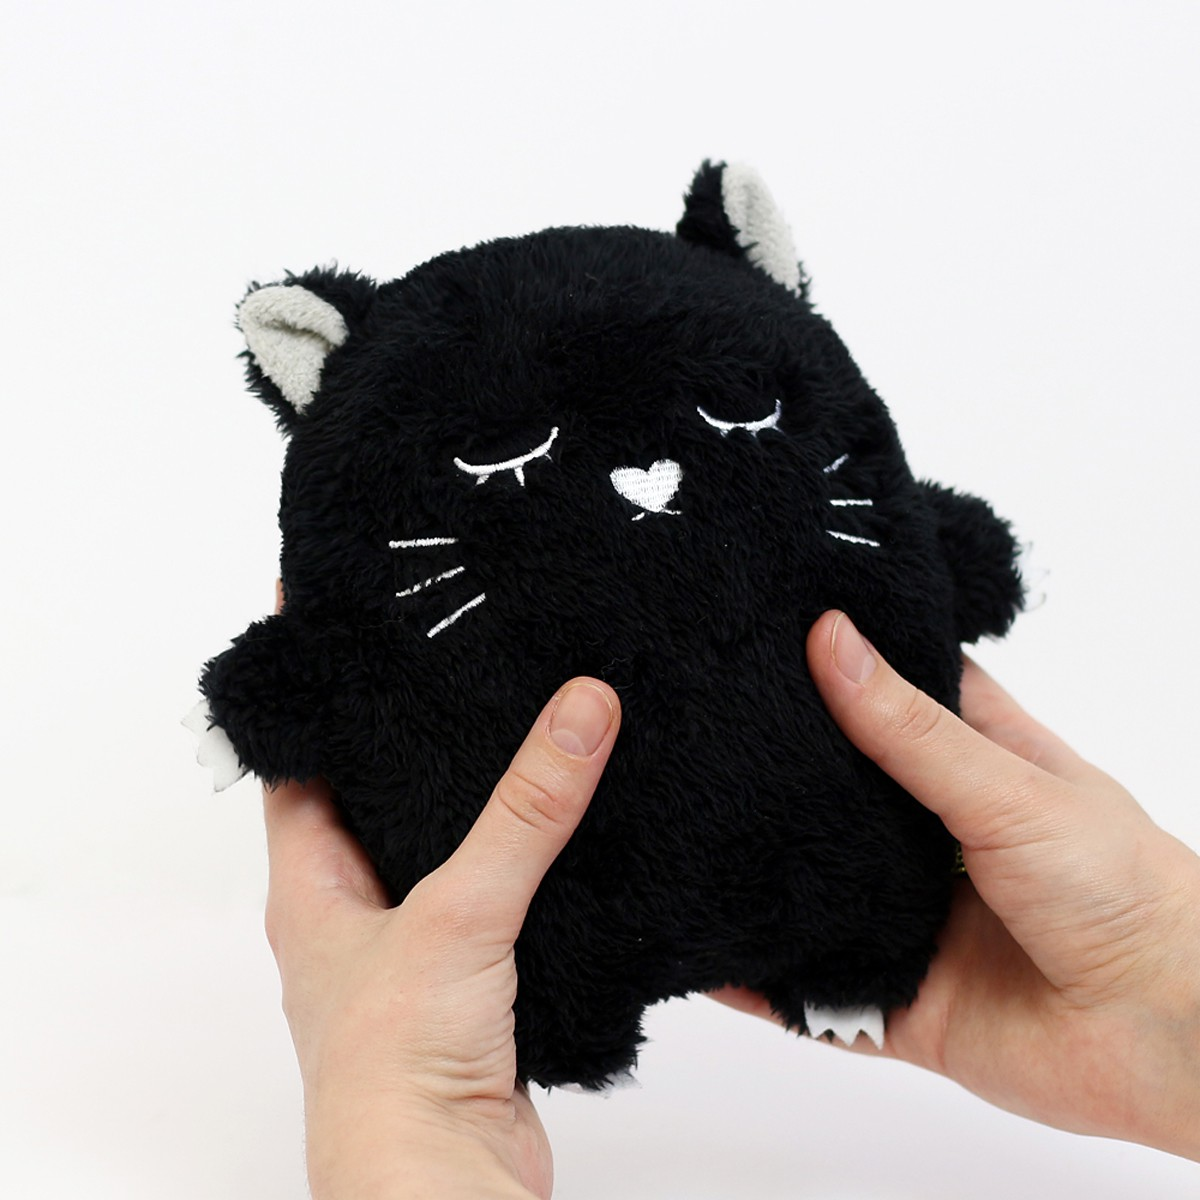 Ricemomo Plush Toy Black